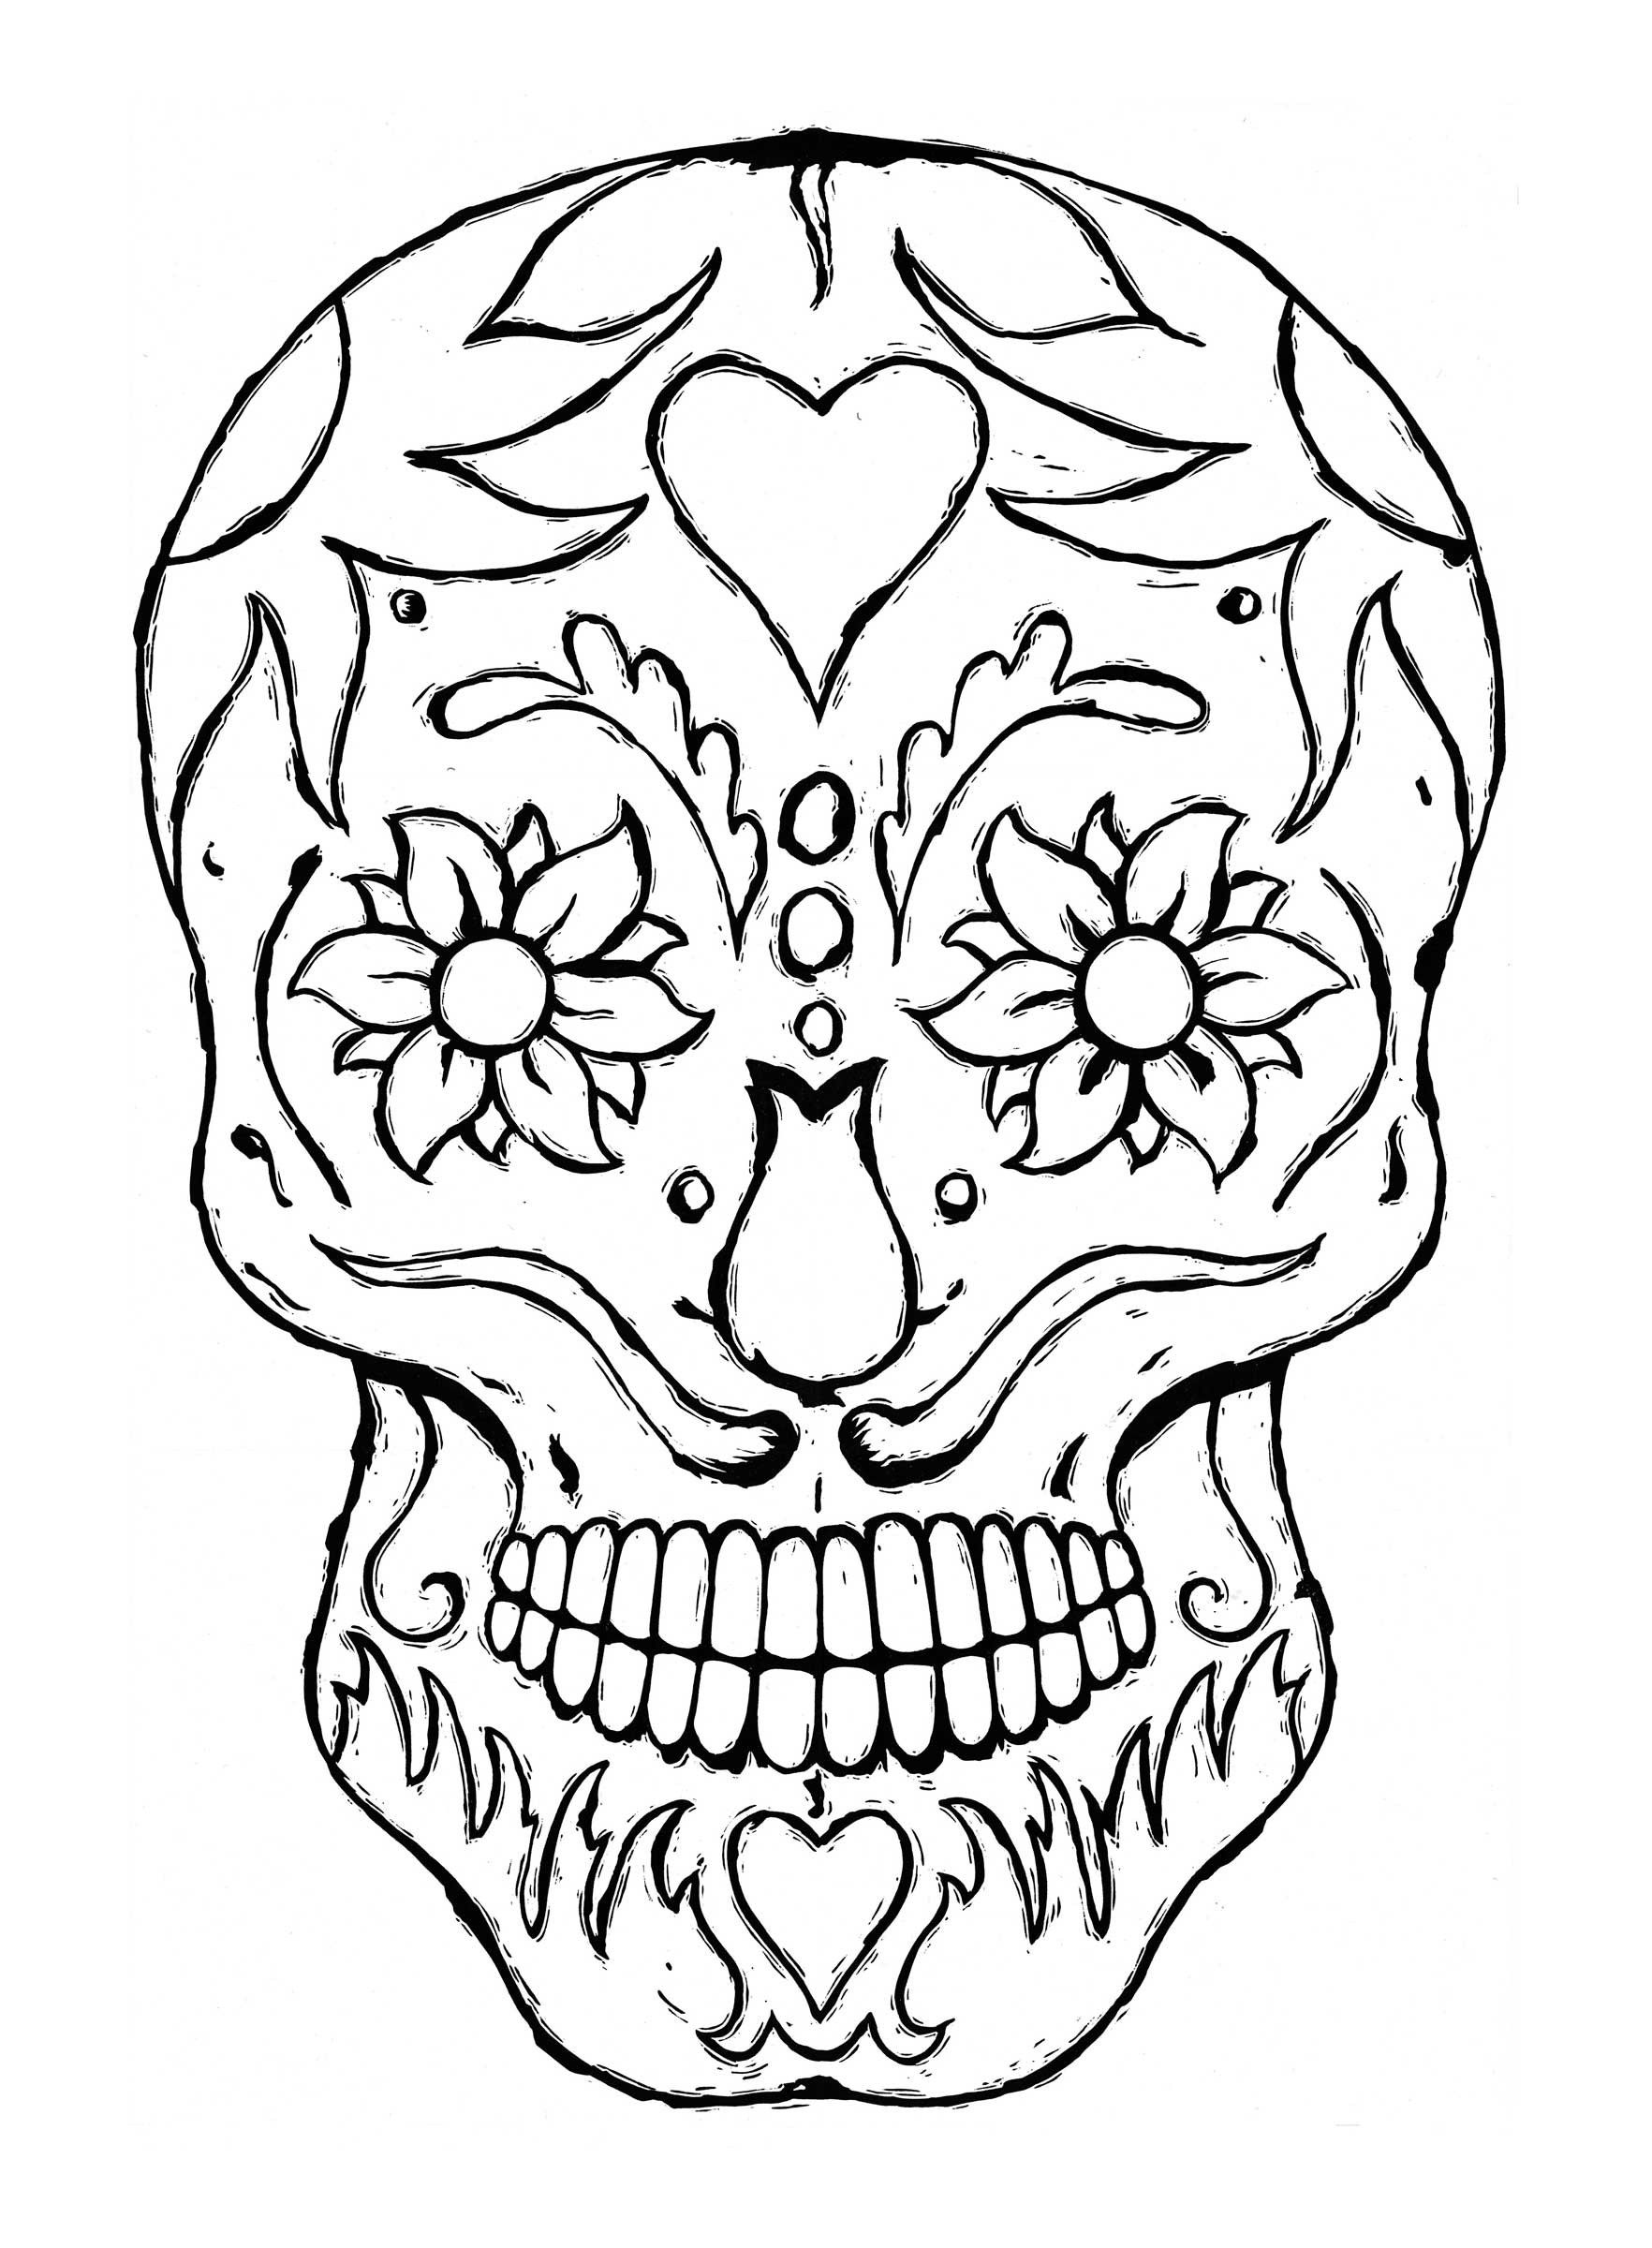 Coloring pages for adults - Colorir Para Adultos 1